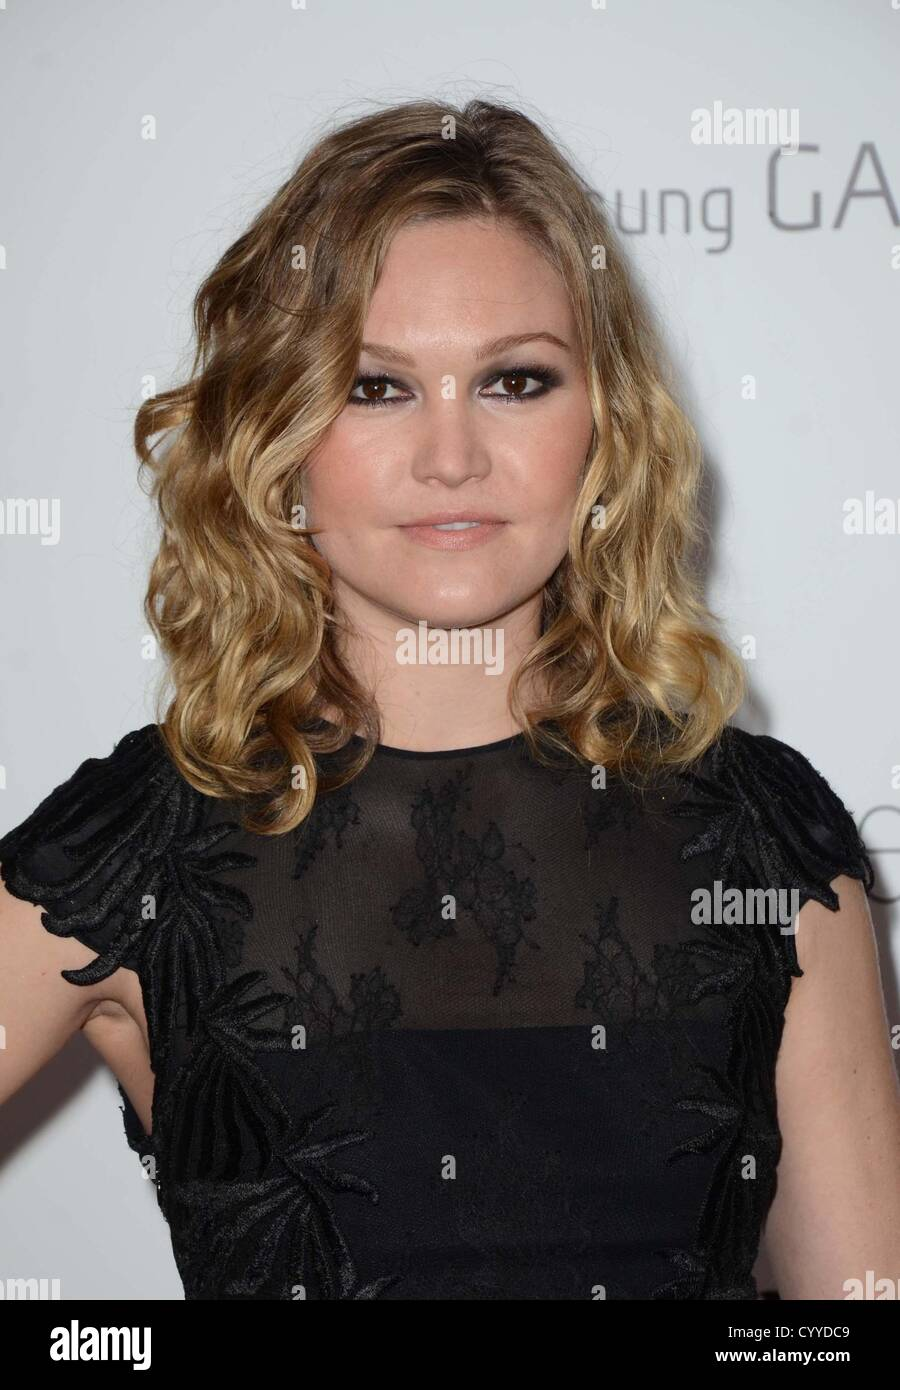 2019 Julia Stiles naked (36 photos), Tits, Leaked, Selfie, braless 2020